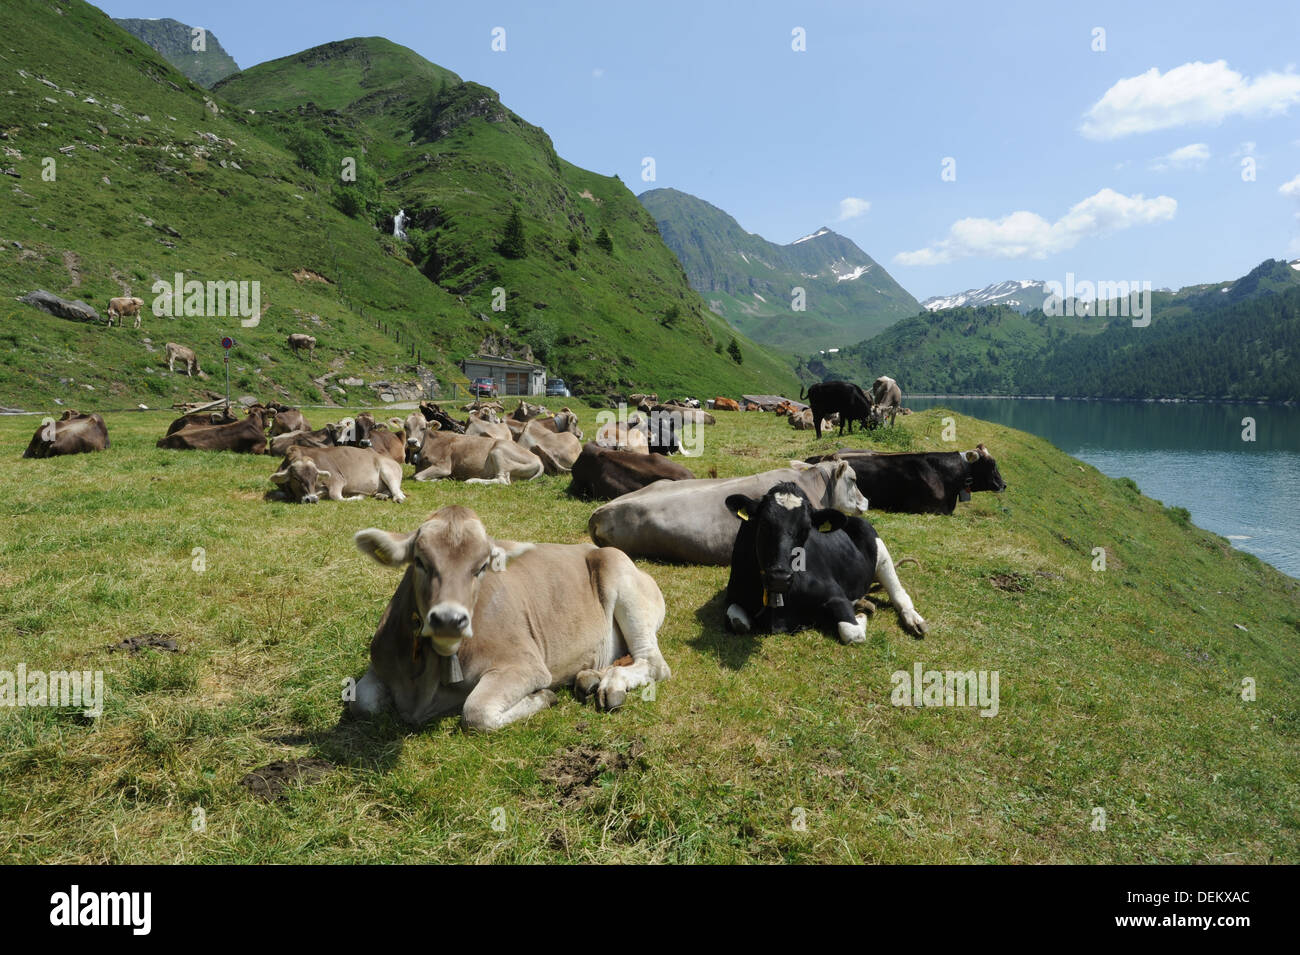 Cows near lake Ritom at Piora on the swiss alps Stock Photo